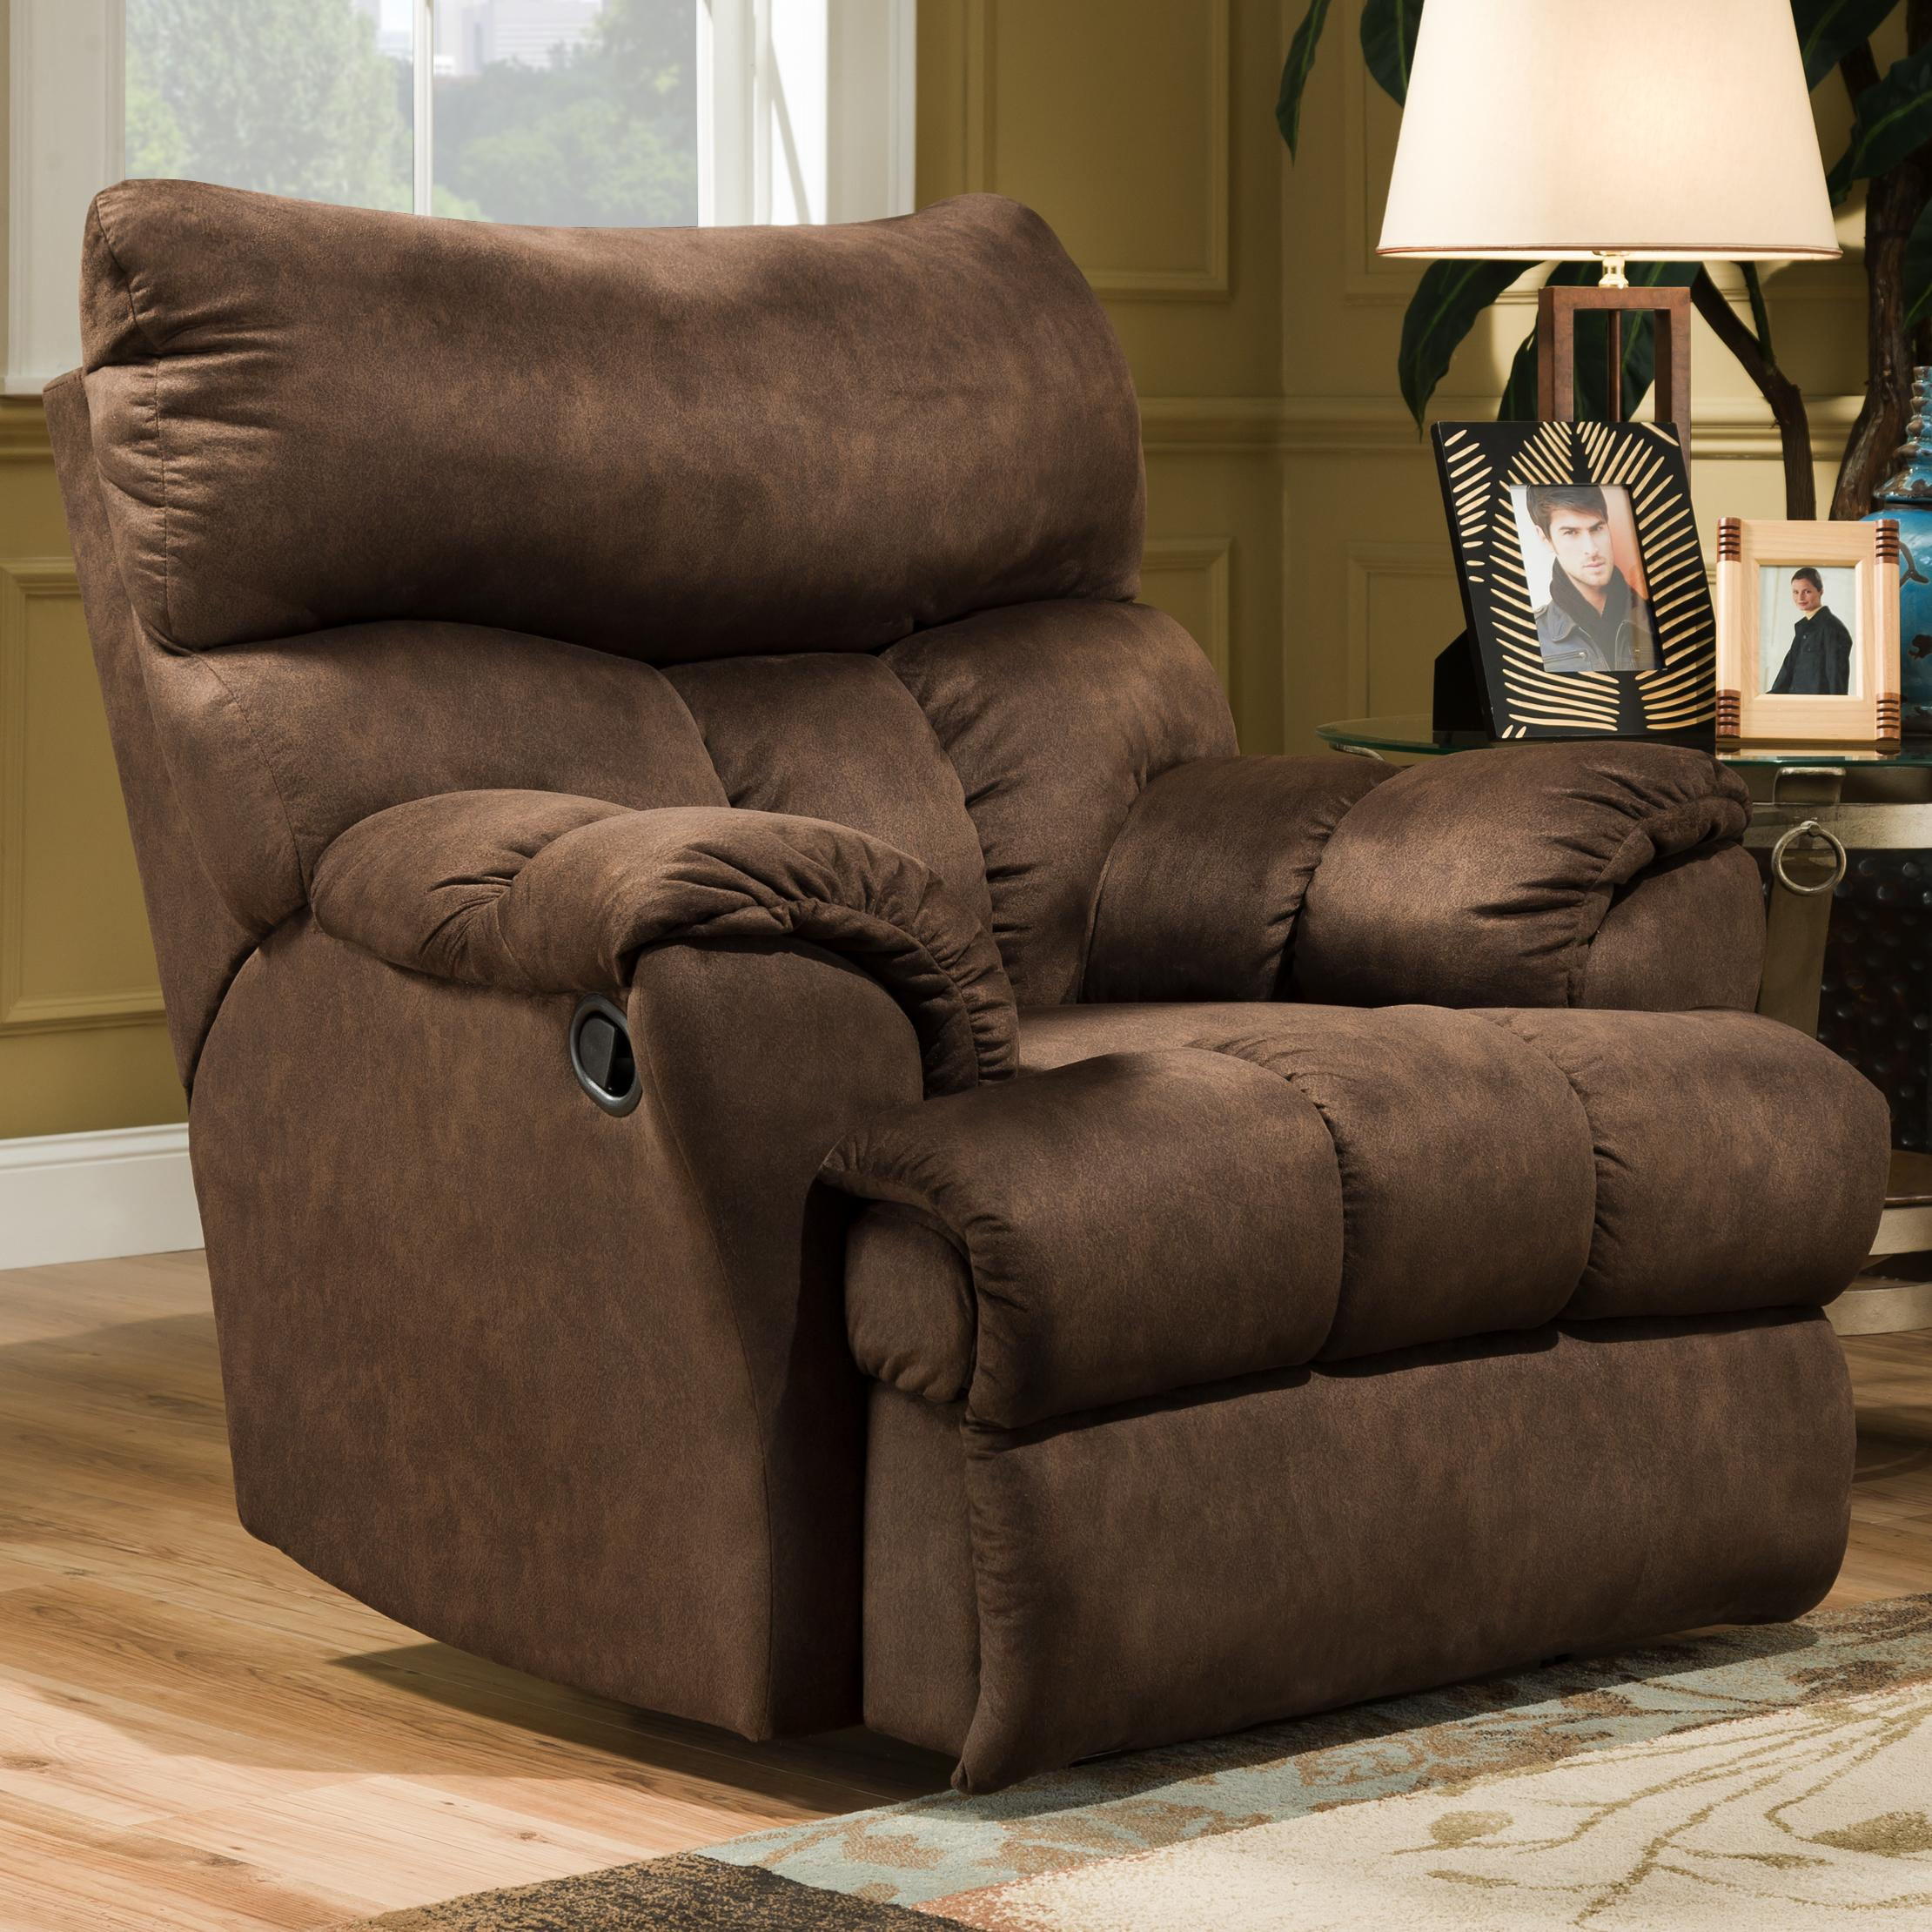 Impressive southern motion dreamer rocker recliner - item number: 1113 f yhixyuv